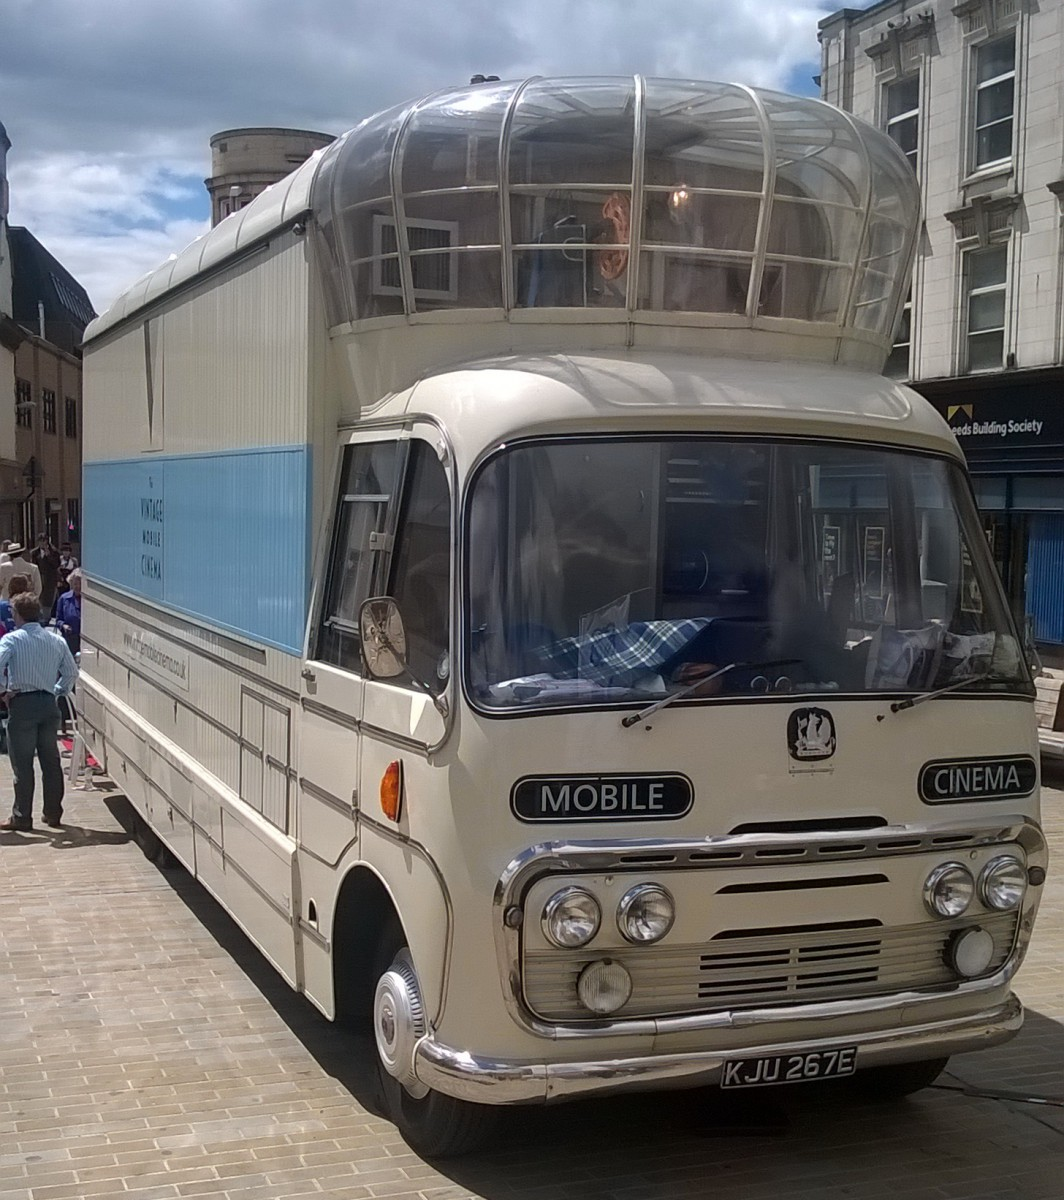 Curbside Classic: 1967 Bedford SB Mobile Cinema – From The